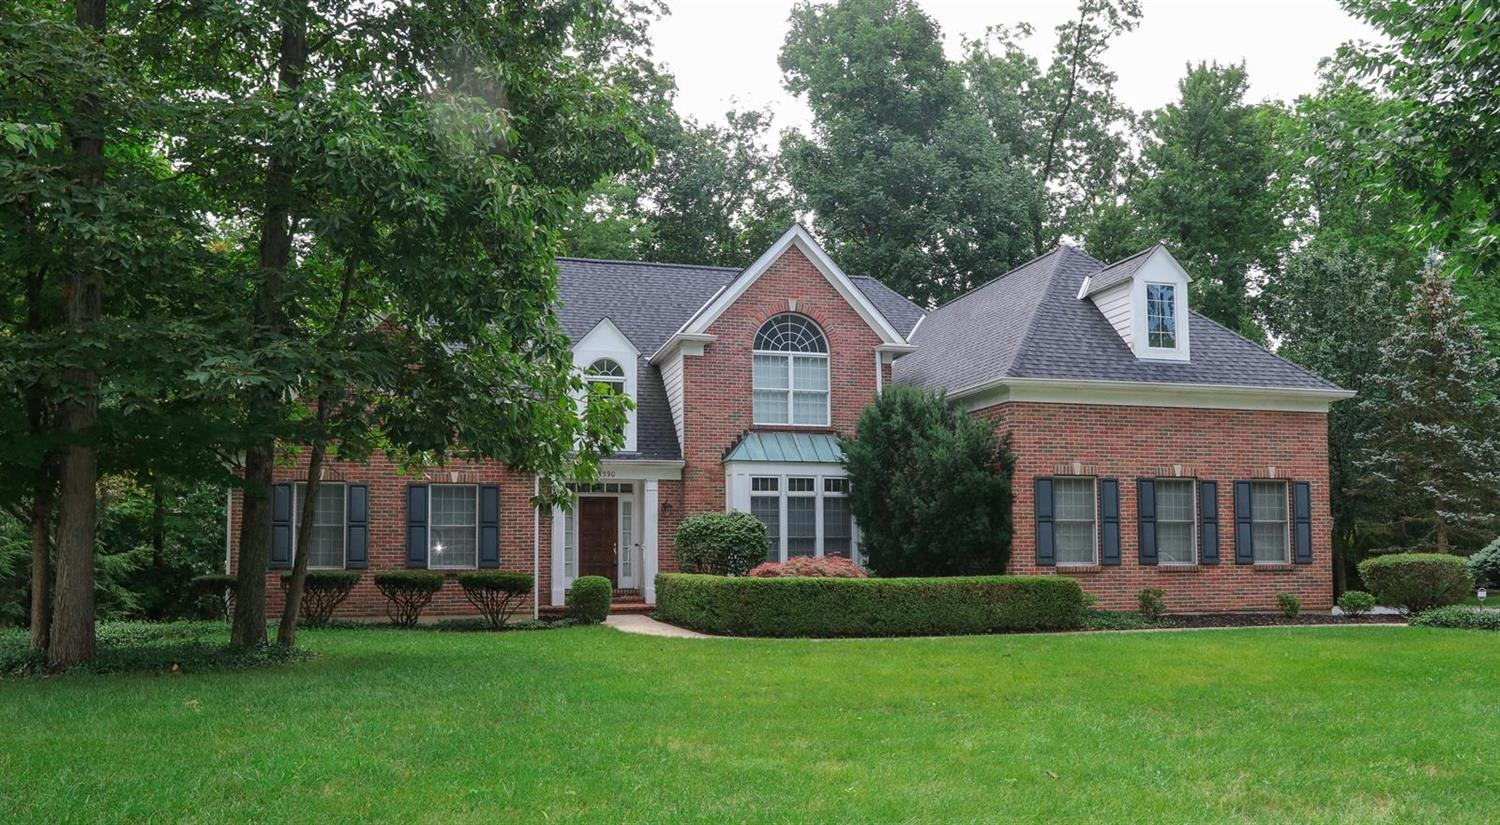 11390 Brittany Woods Ln Sycamore Twp OH